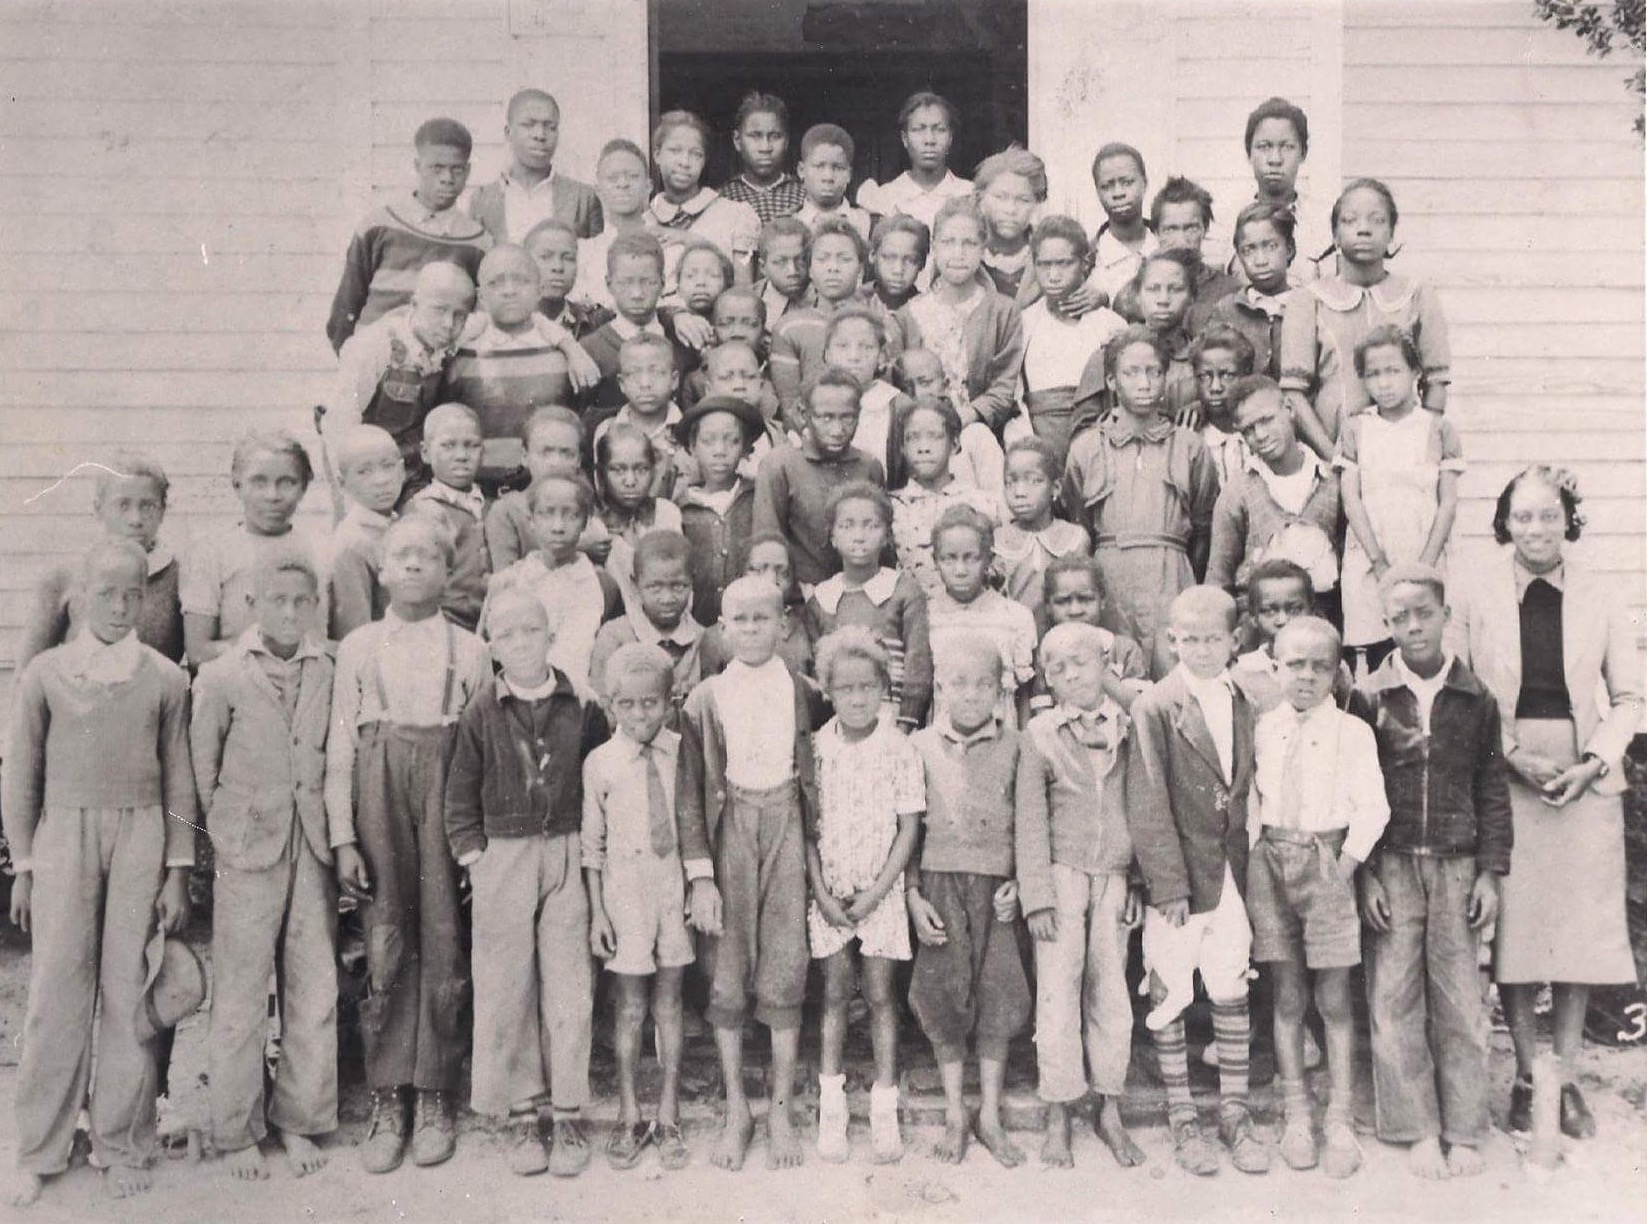 Donella Brown Wilson with students in Fort Motte, 1940s. Image courtesy Minnie Wilson Bivens